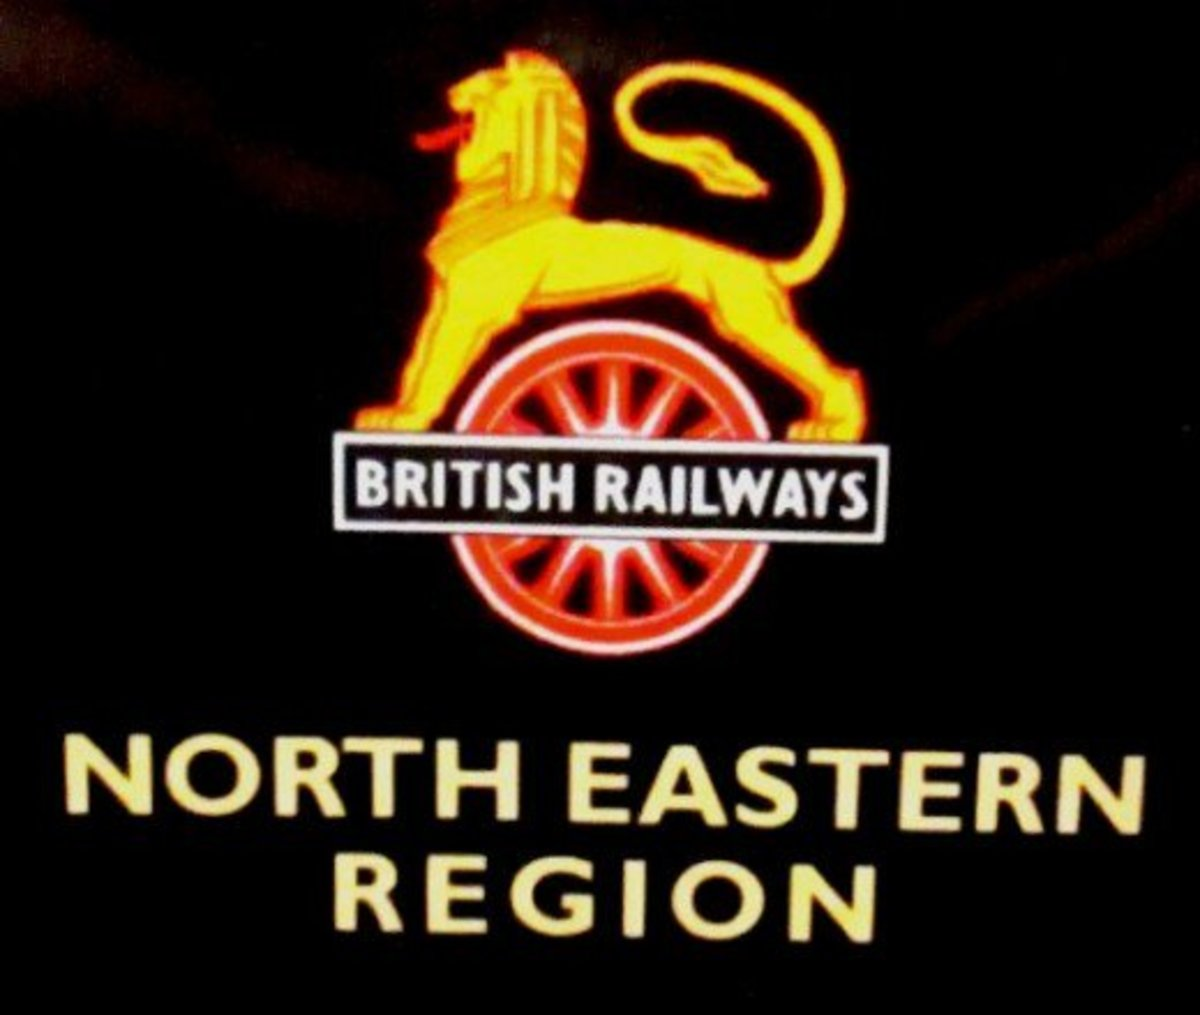 Wheels of Industry and commerce, the 'cycling lion' emblem adopted by British Railways in its early years